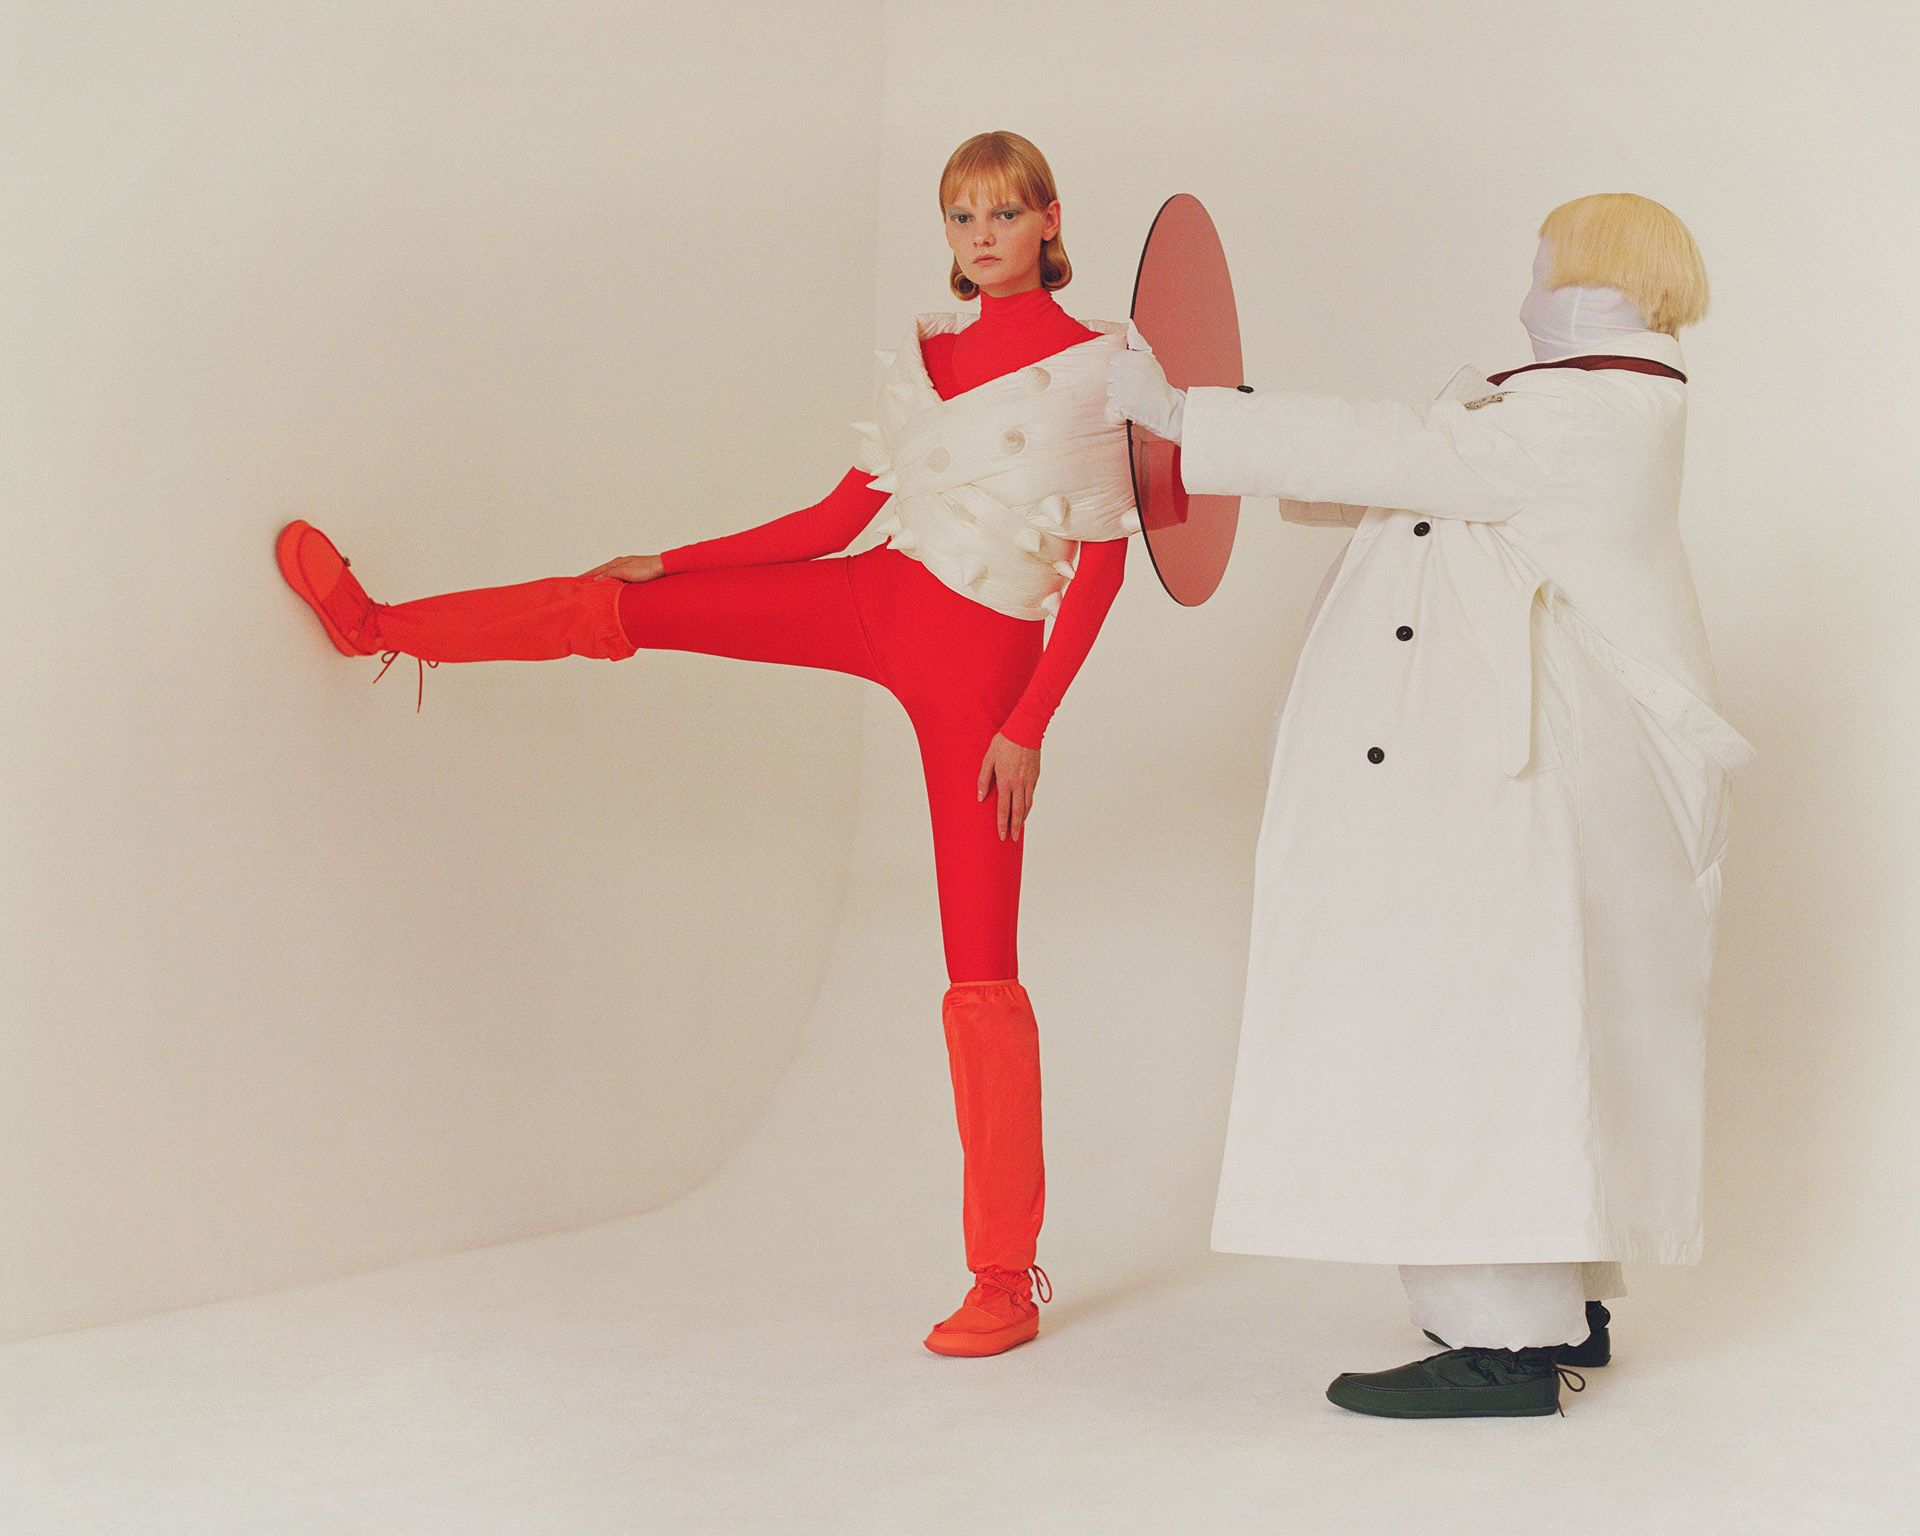 redhead female model wearing red boots red overalls and white puffy spiked coat photographed by Oumayma B Tanfous for Moncler as a story for Document Journal magazine